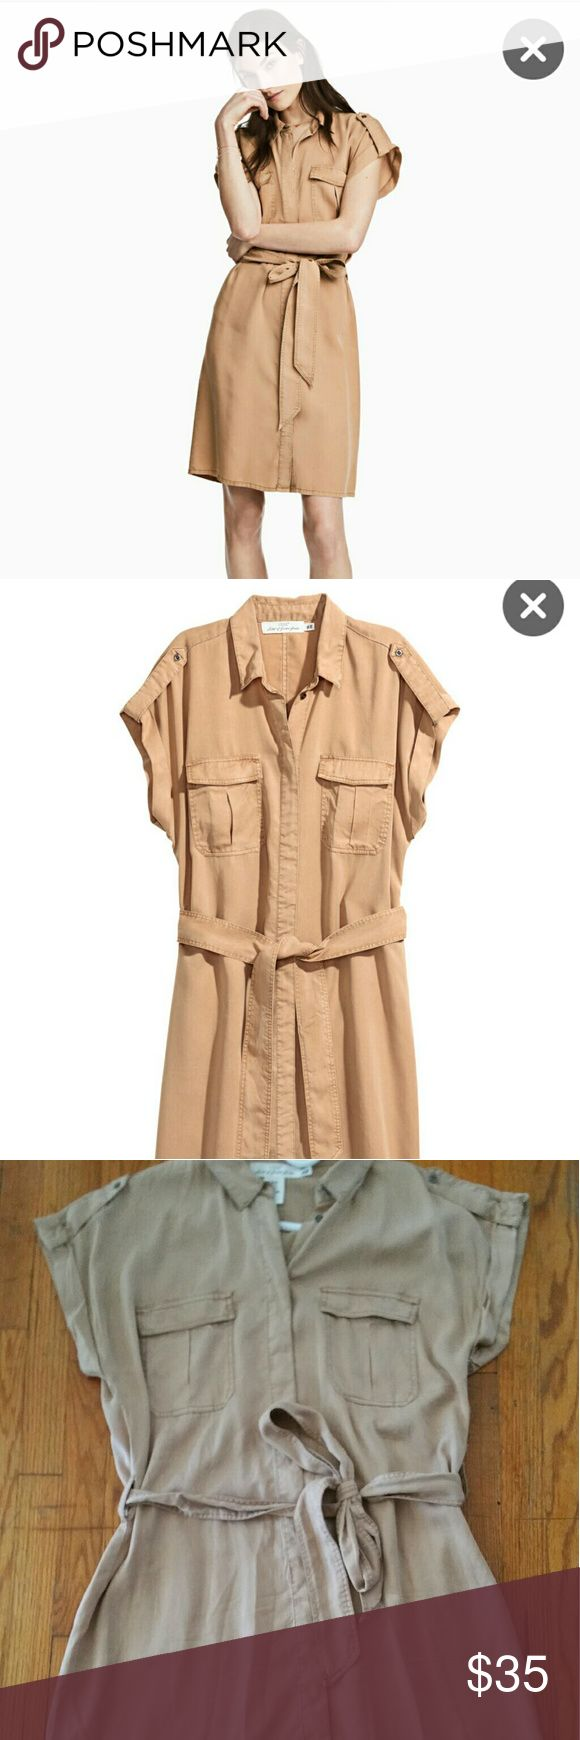 Tan Lyocell Shirt Dress H&M Sz 10 SS2017 Lovely H&M tan colored shirt/safari dress. Still available online for $59! Made from lyocell, a very buttery, silky cotton type fabric. This dress is modest in length. I am 5'5 155lbs with curves and it hits about 5 inches above my knee. H&M Dresses